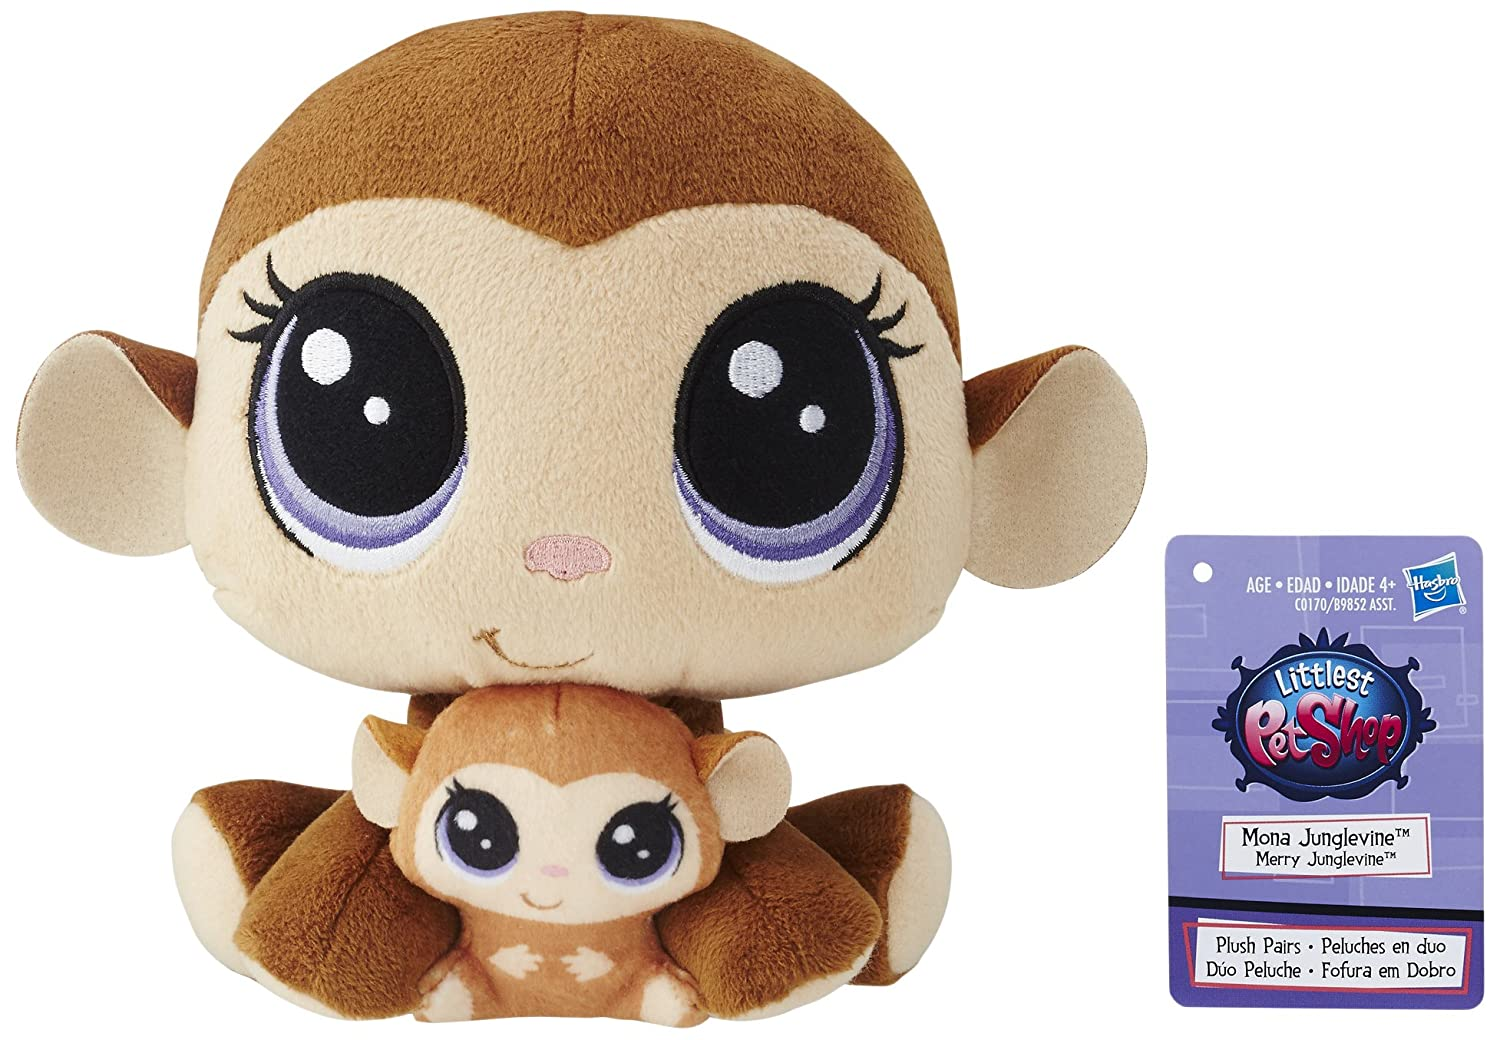 Amazon.com: Littlest Pet Shop Mona Junglevine and Merry Junglevine Plush Pairs: Toys & Games